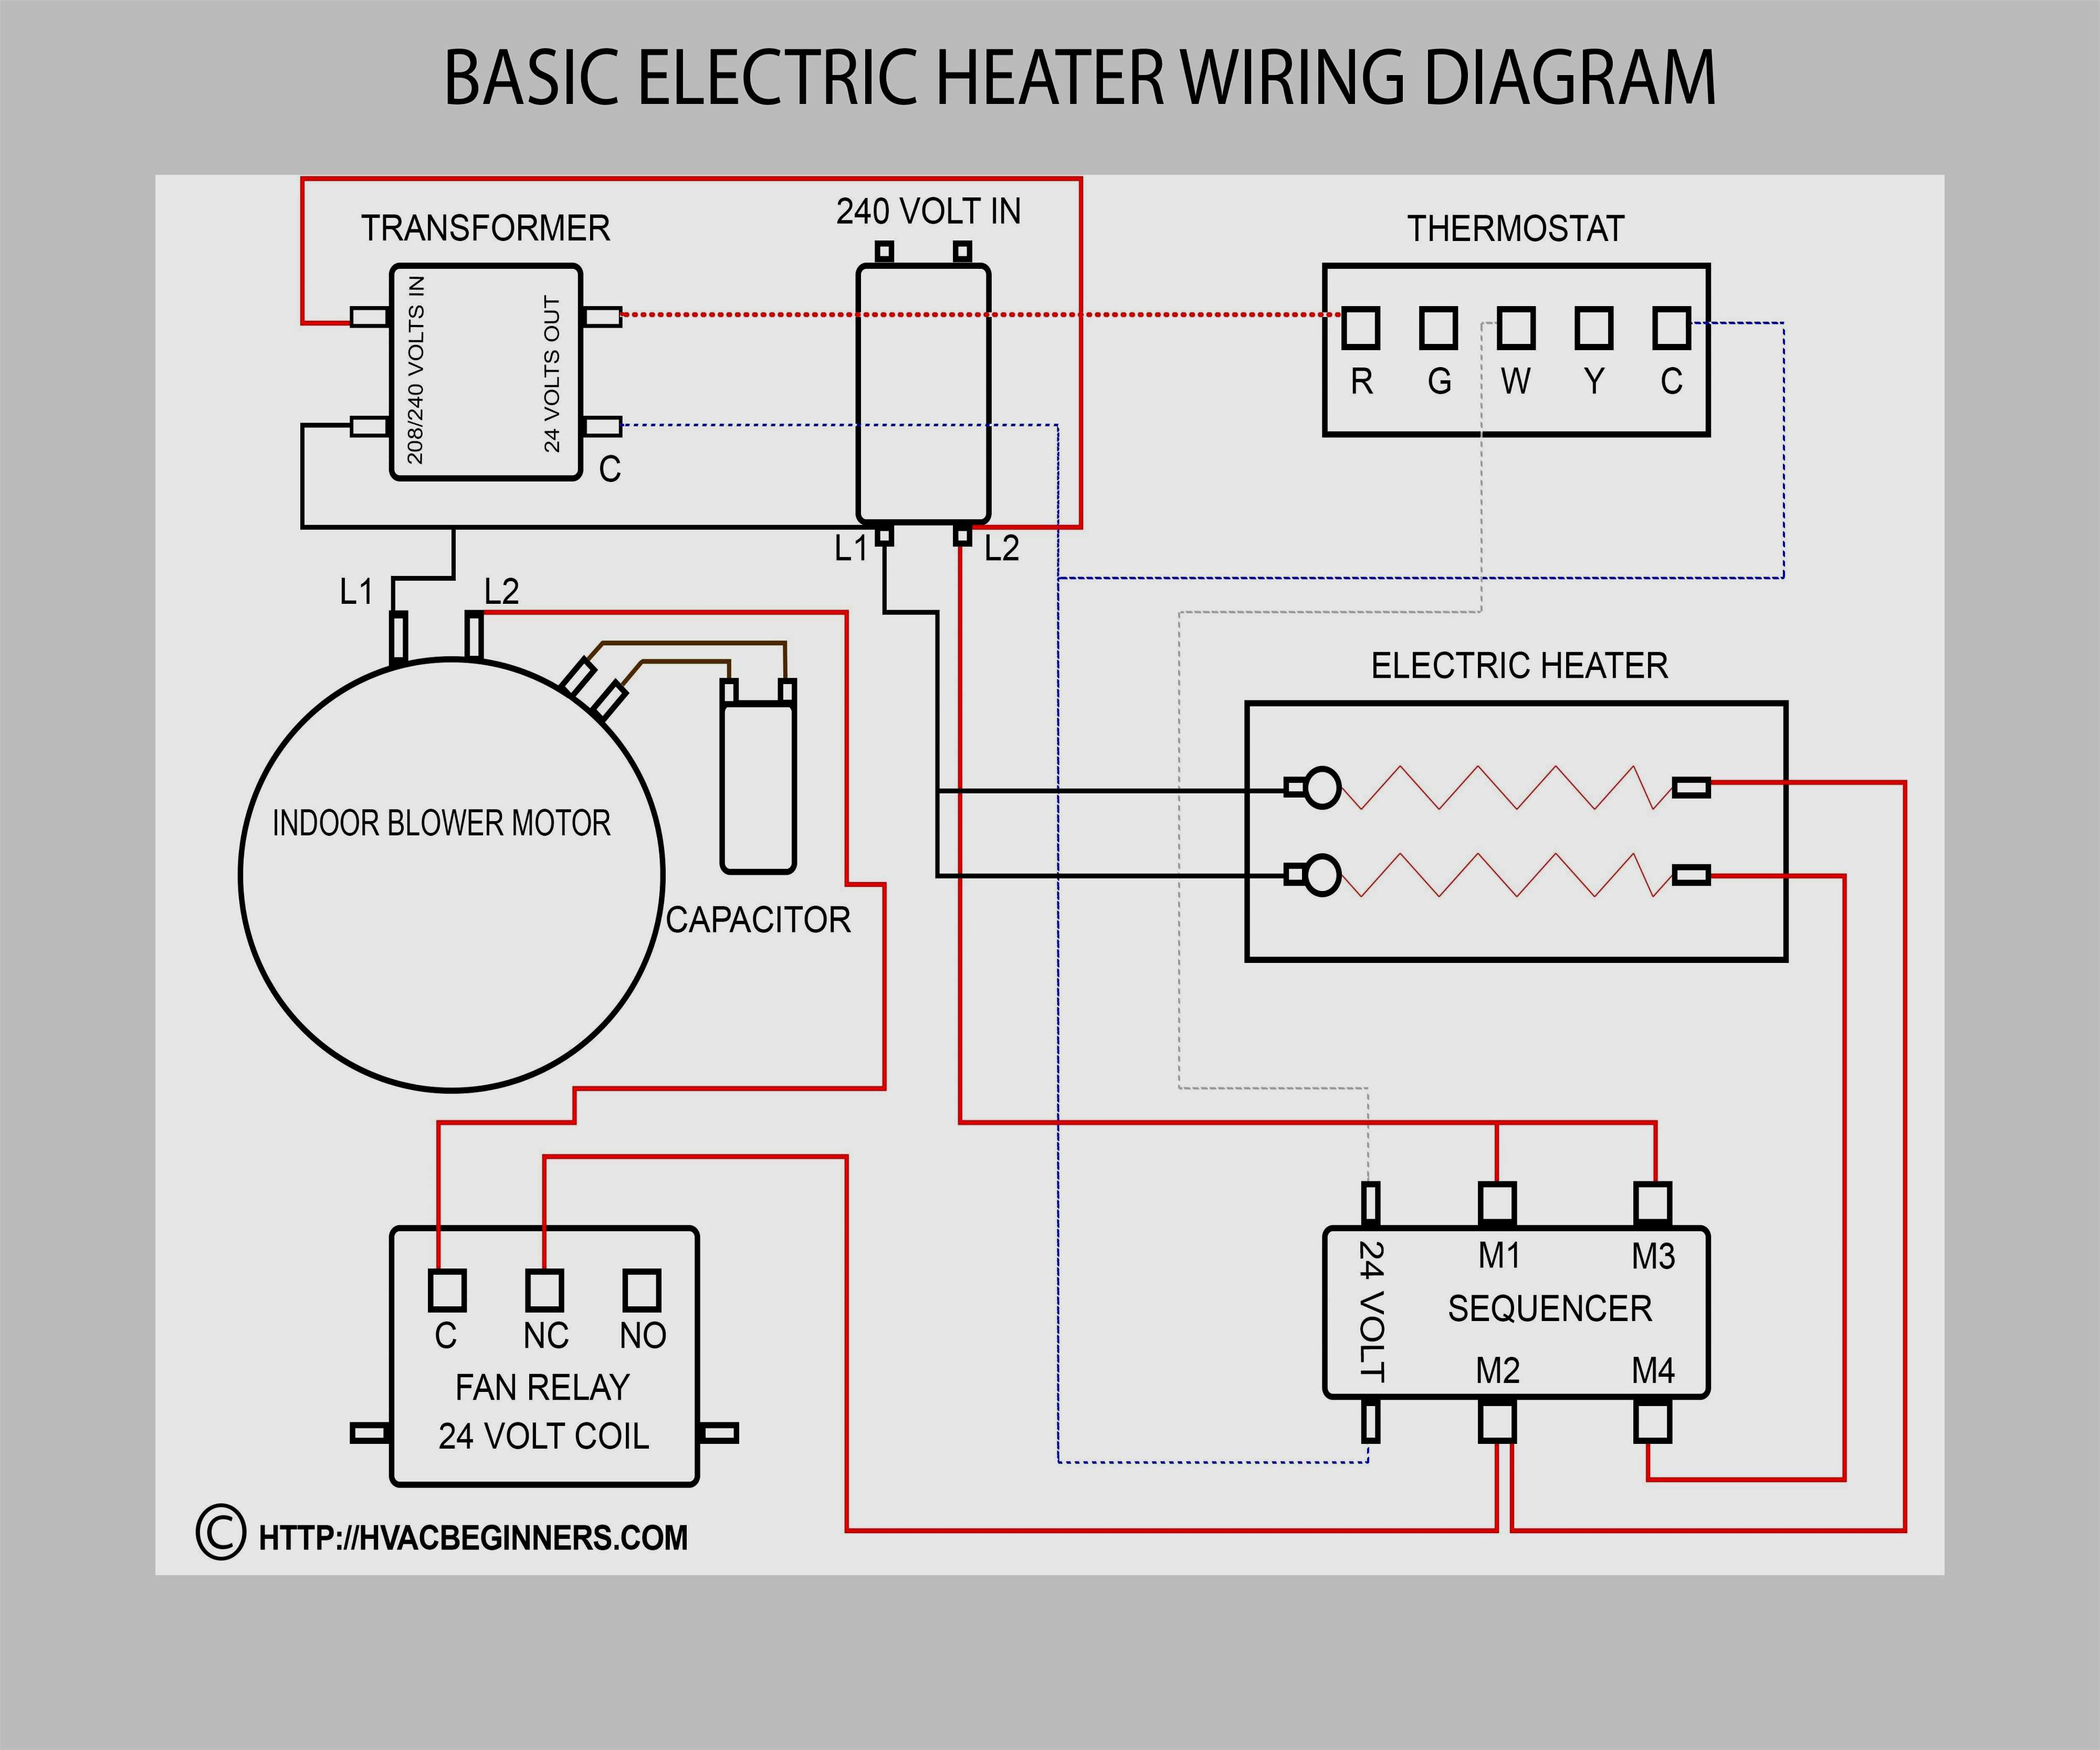 Atwood Furnace Relay Wiring Diagram | Manual E-Books - Atwood Furnace Wiring Diagram